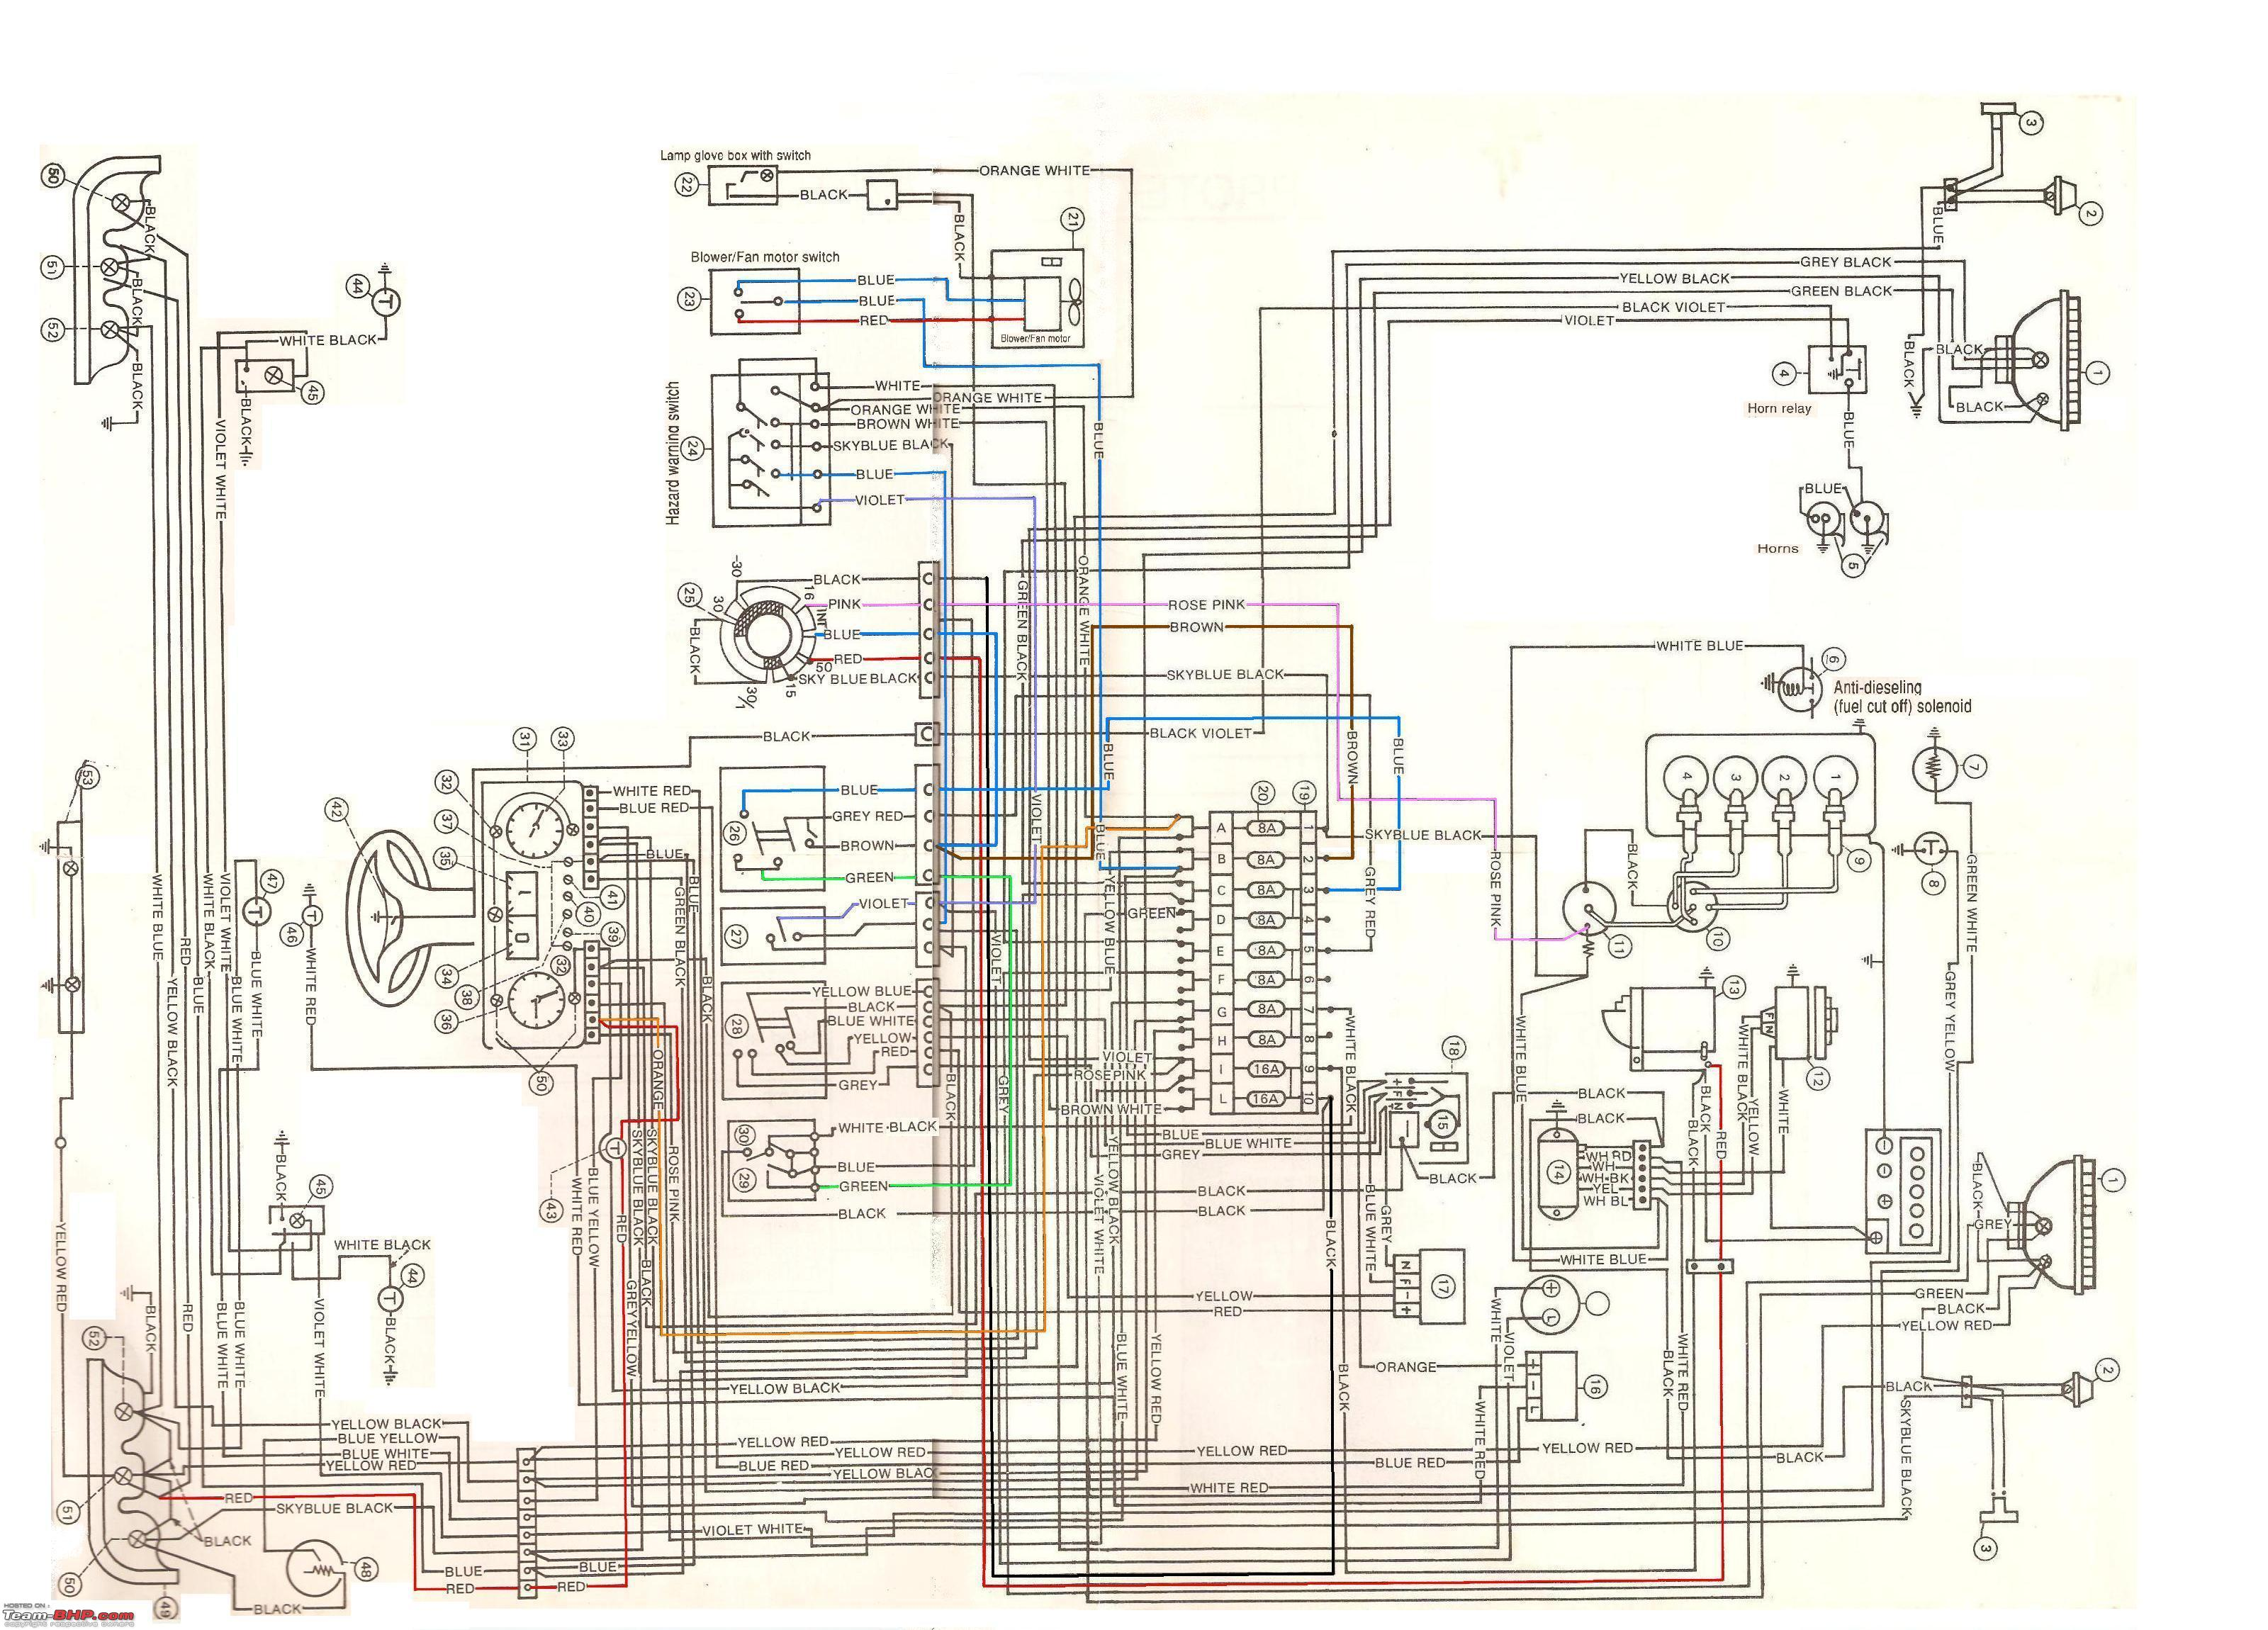 maruti wiring diagram maruti image wiring wiring diagram of maruti 800 car wiring image on maruti 800 wiring diagram